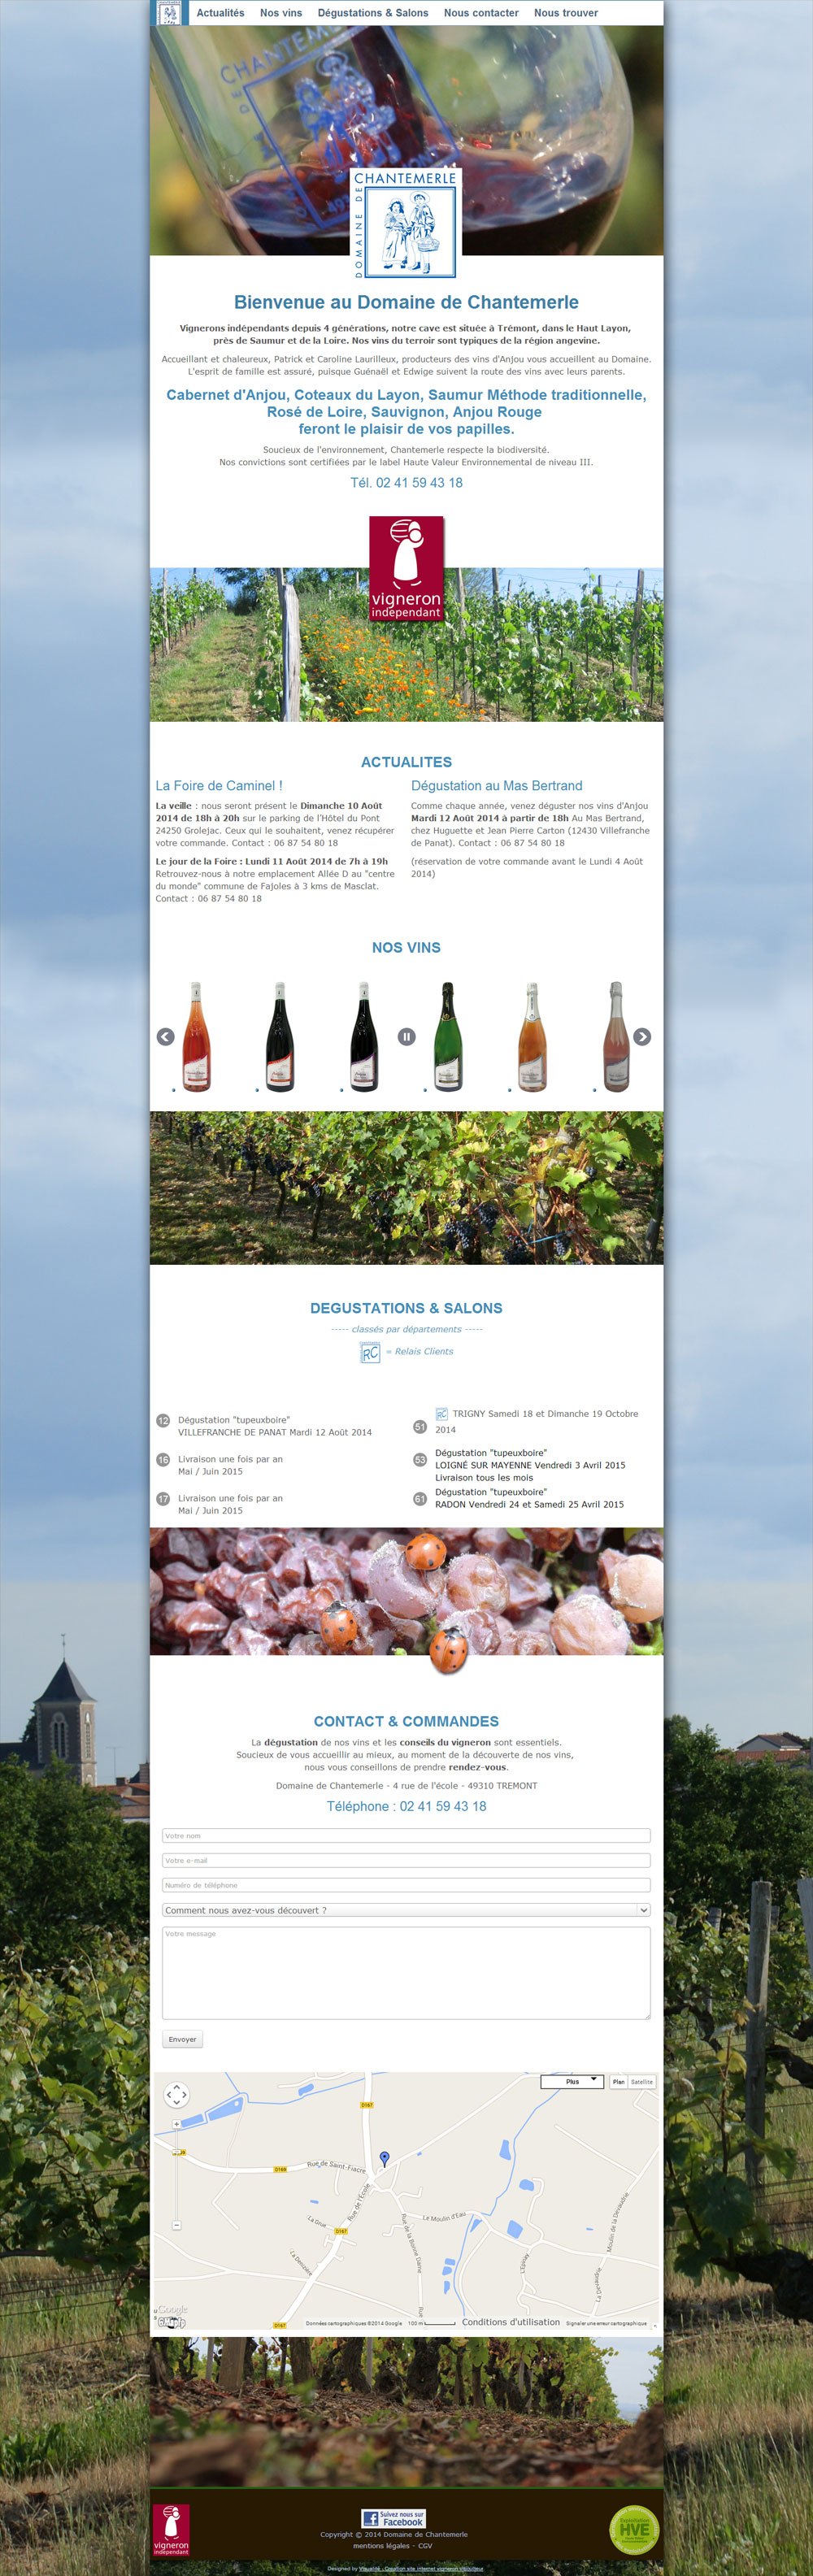 domaine-de-chantemerle-one-page